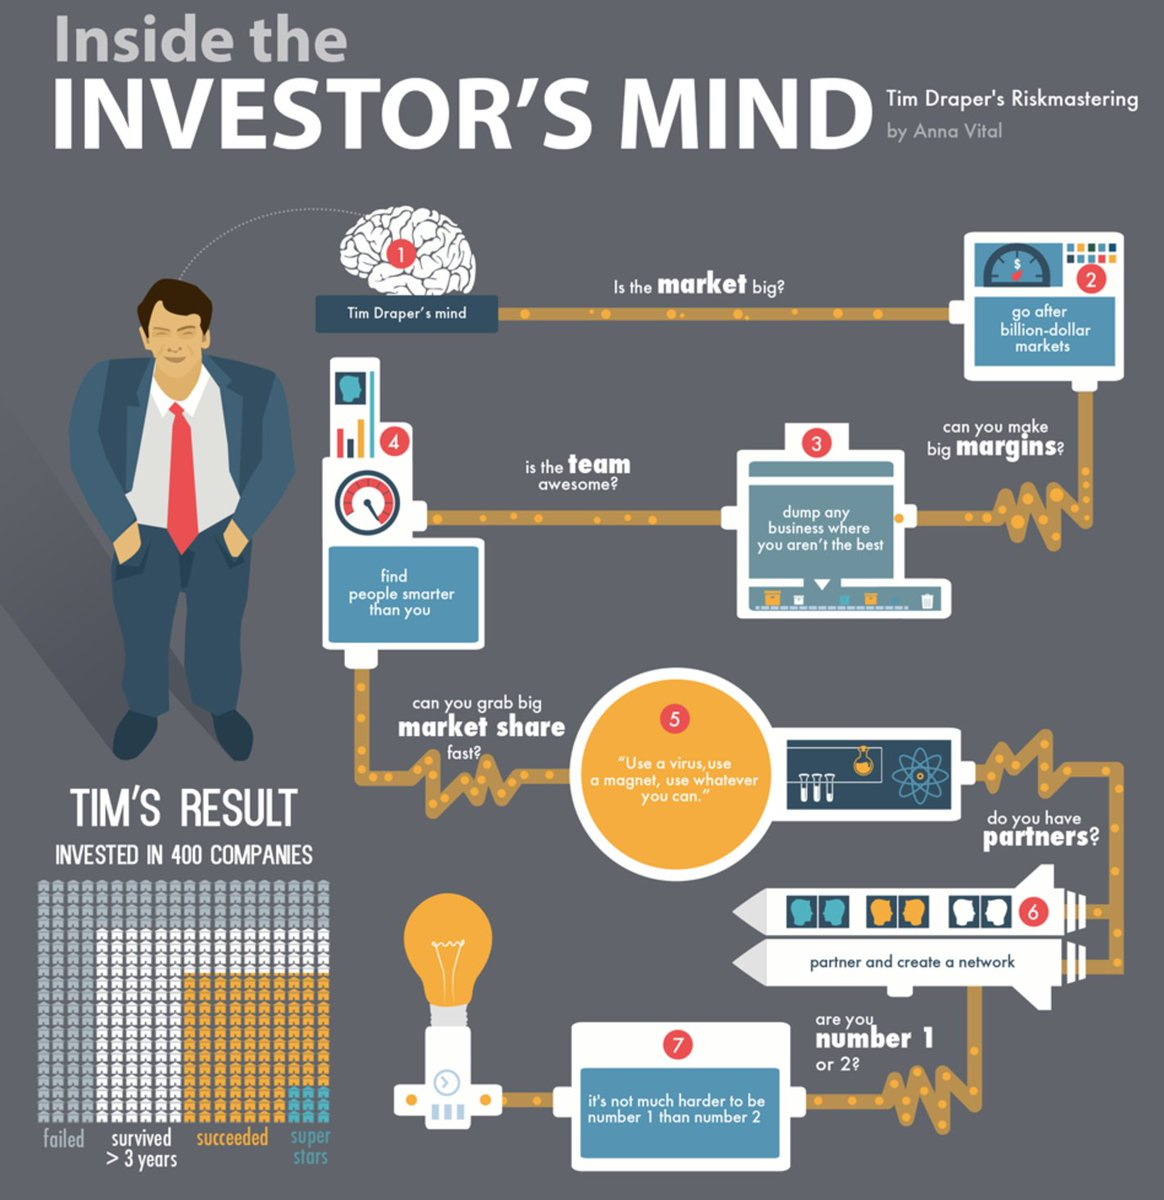 Inside an Investors mind - we look at #Market - #Team - #Margins - #Position  #Economy #business #investor #investment  #leadership #startup<br>http://pic.twitter.com/nYJsbYkxPq